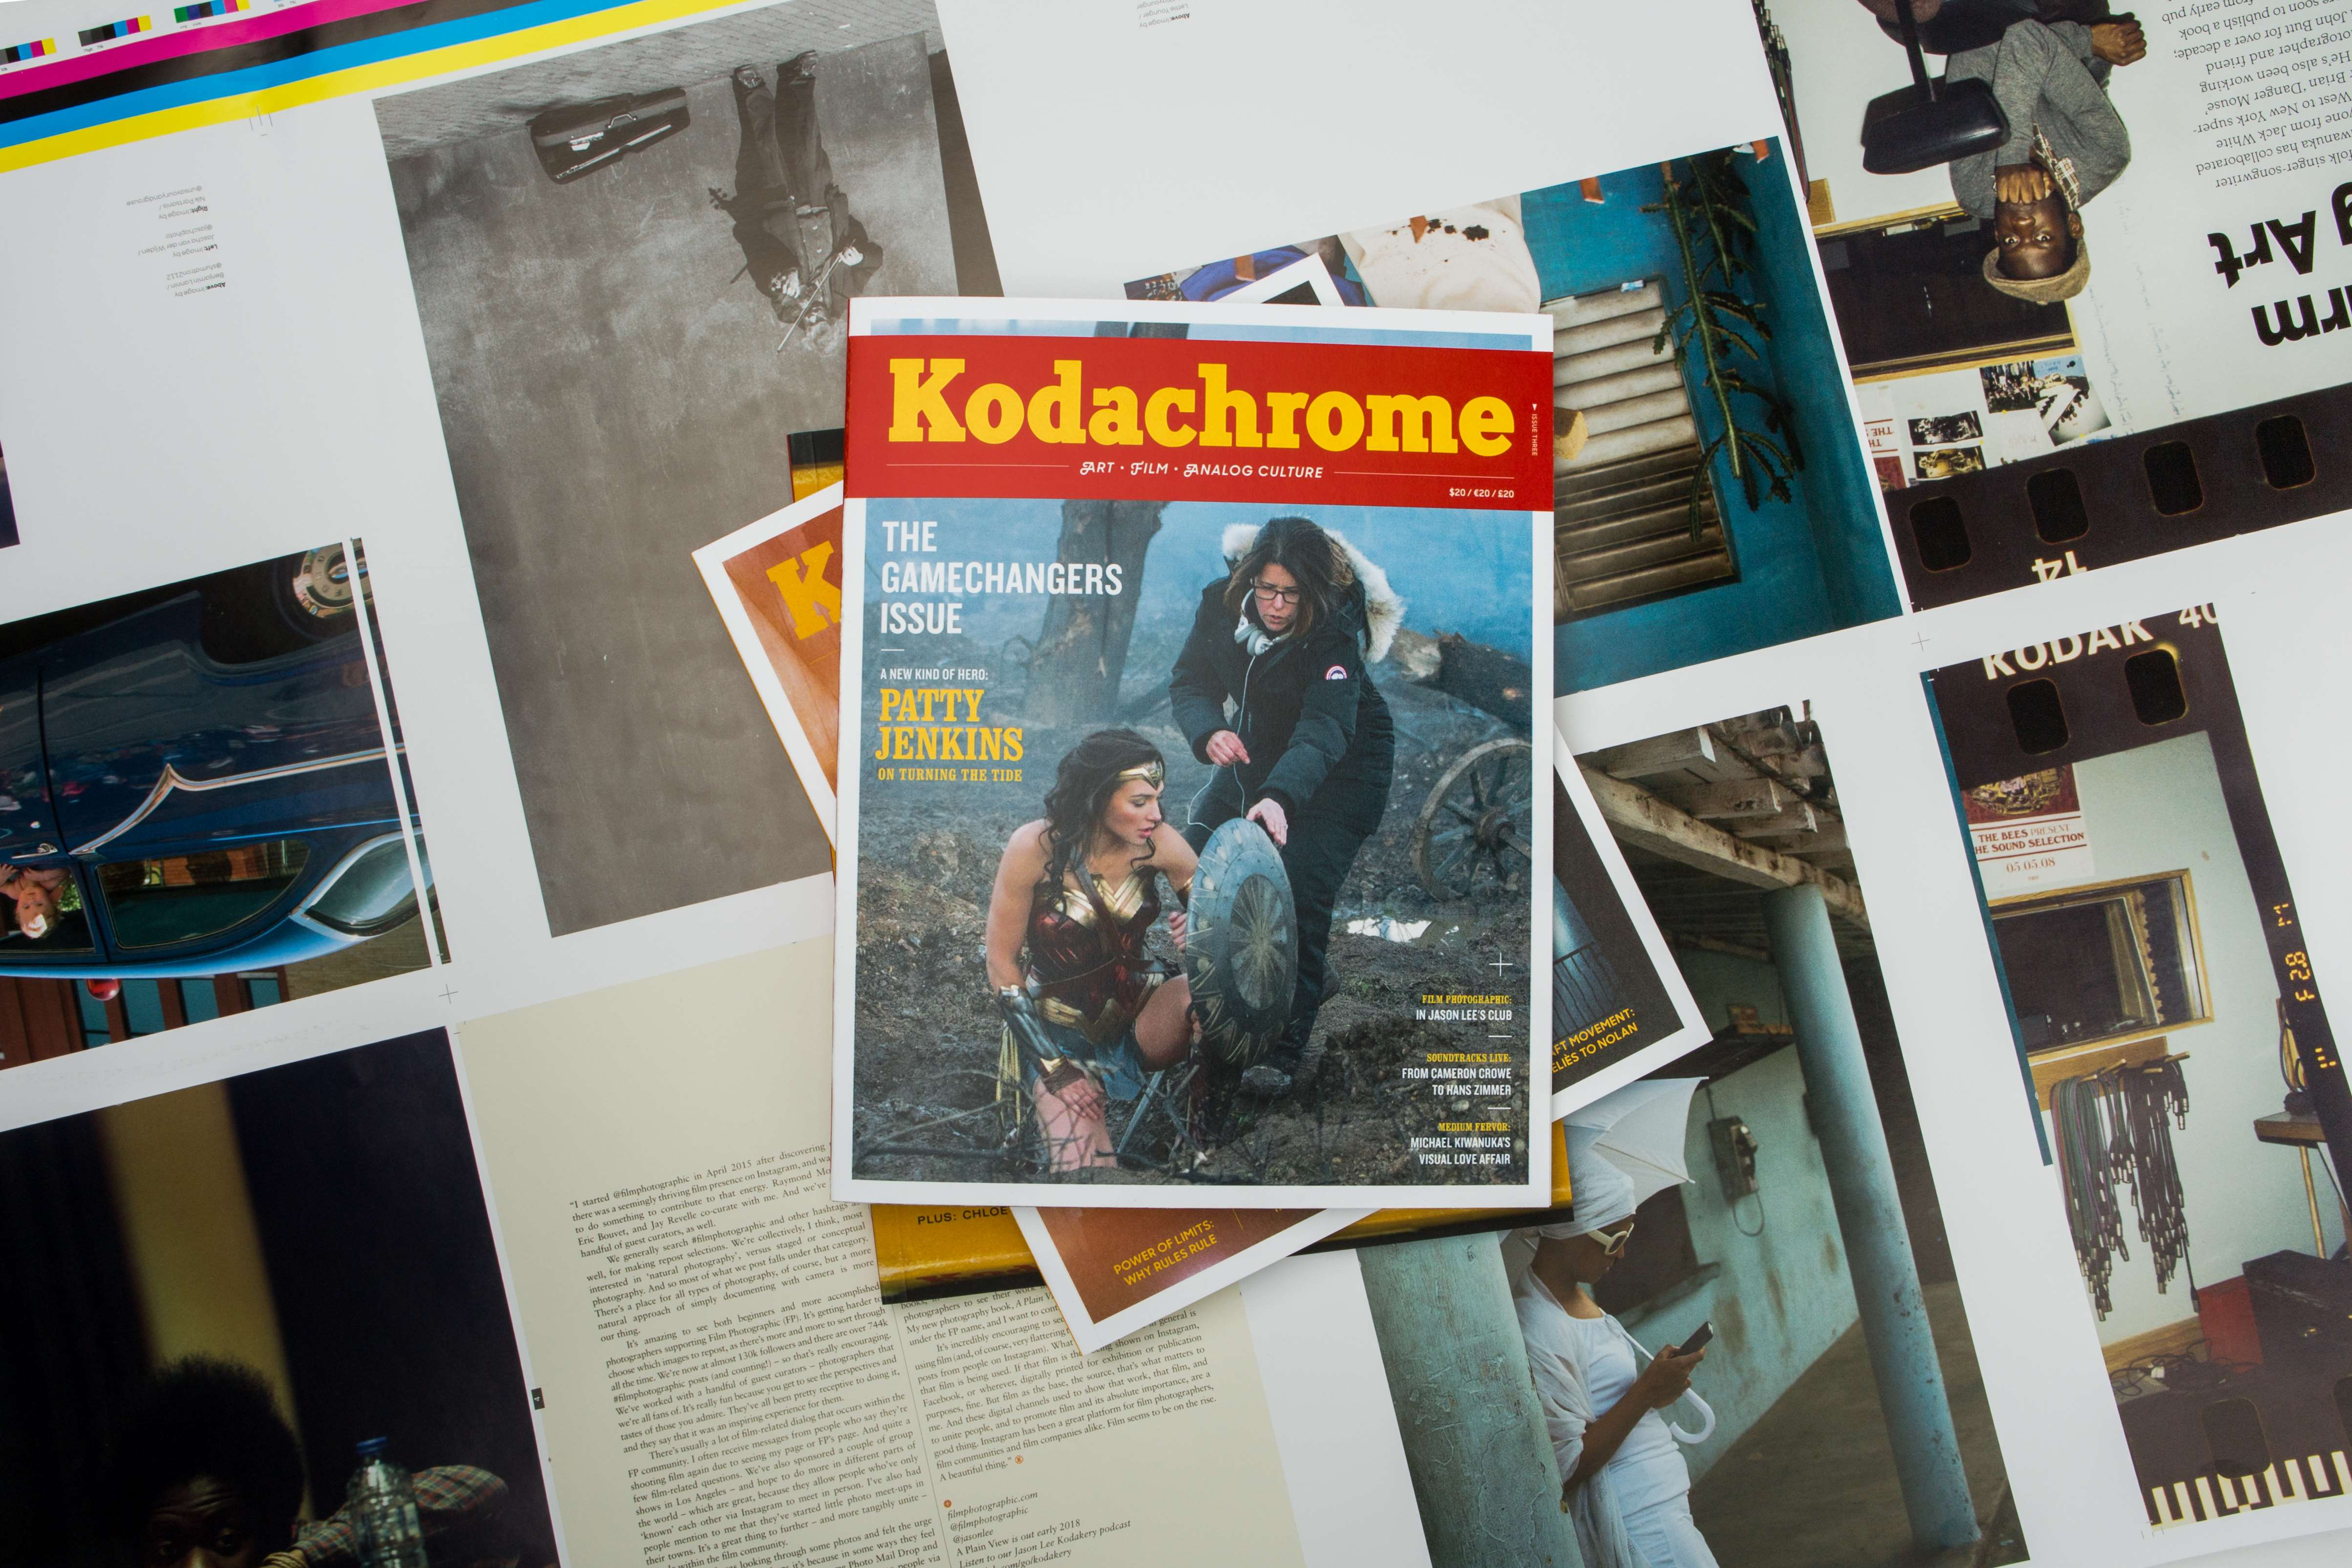 kodachrome print media.jpg